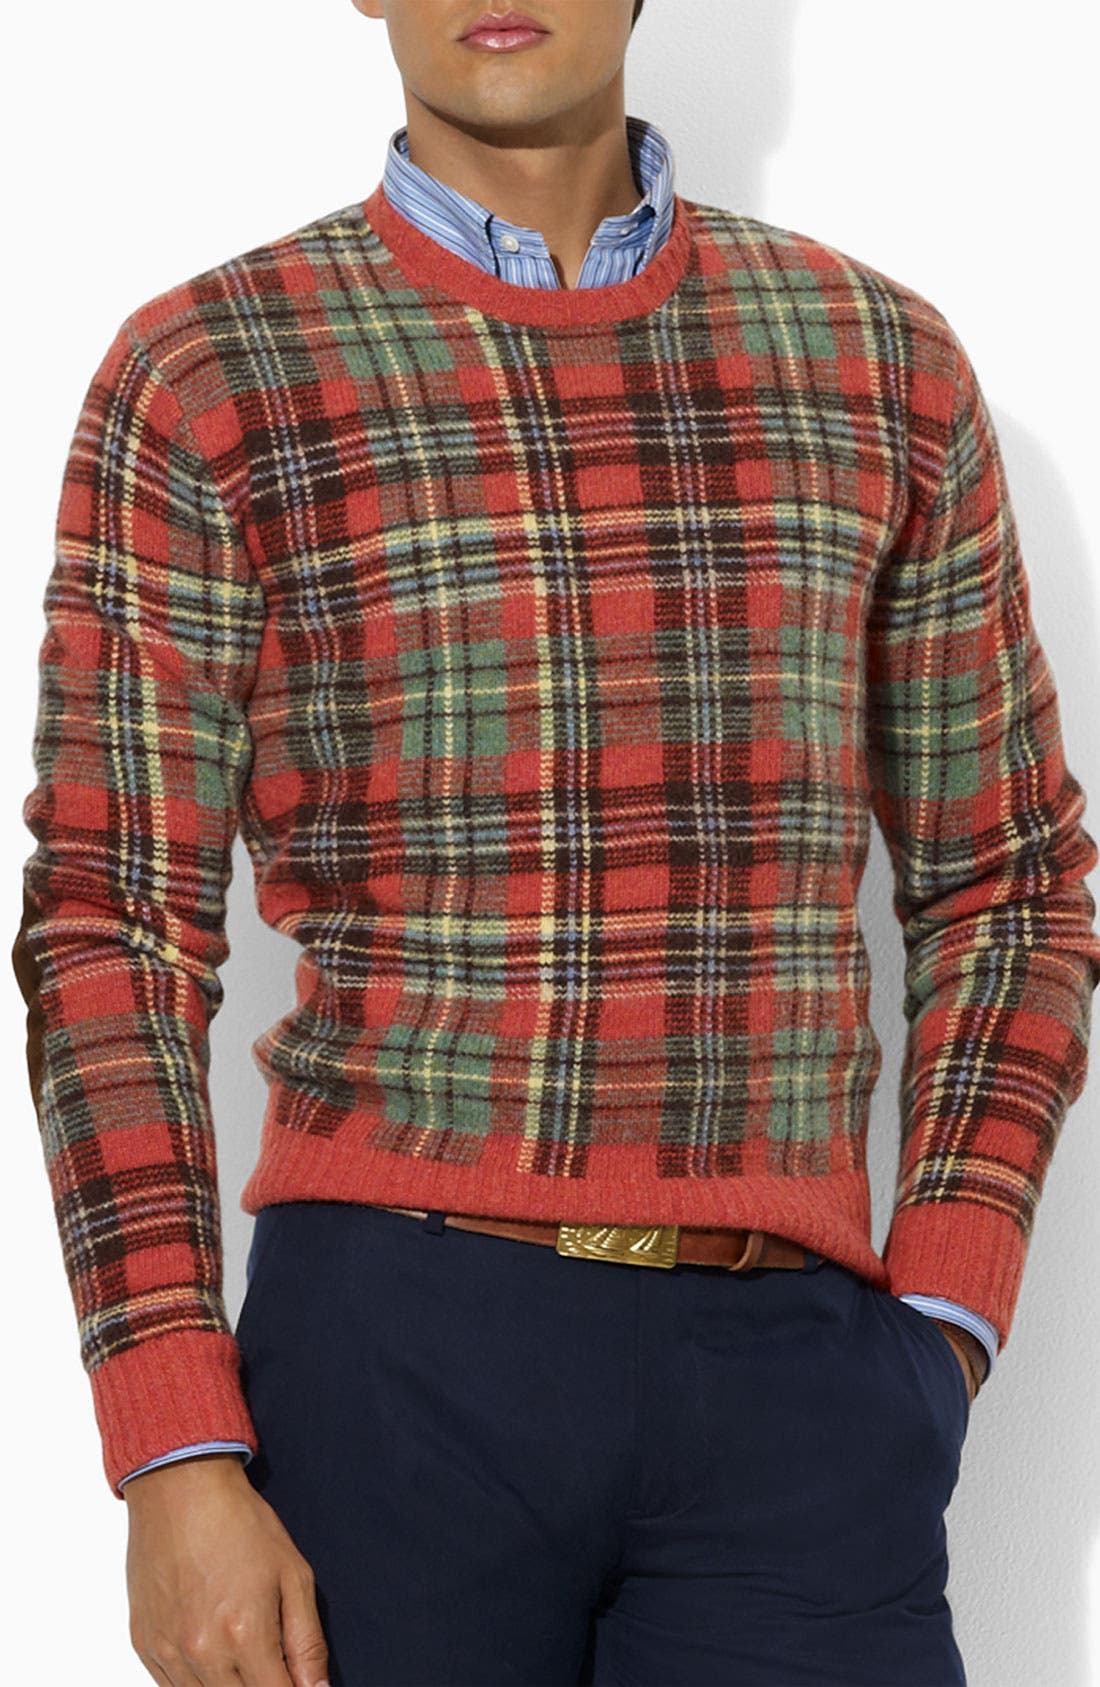 Alternate Image 1 Selected - Polo Ralph Lauren Intarsia Sweater